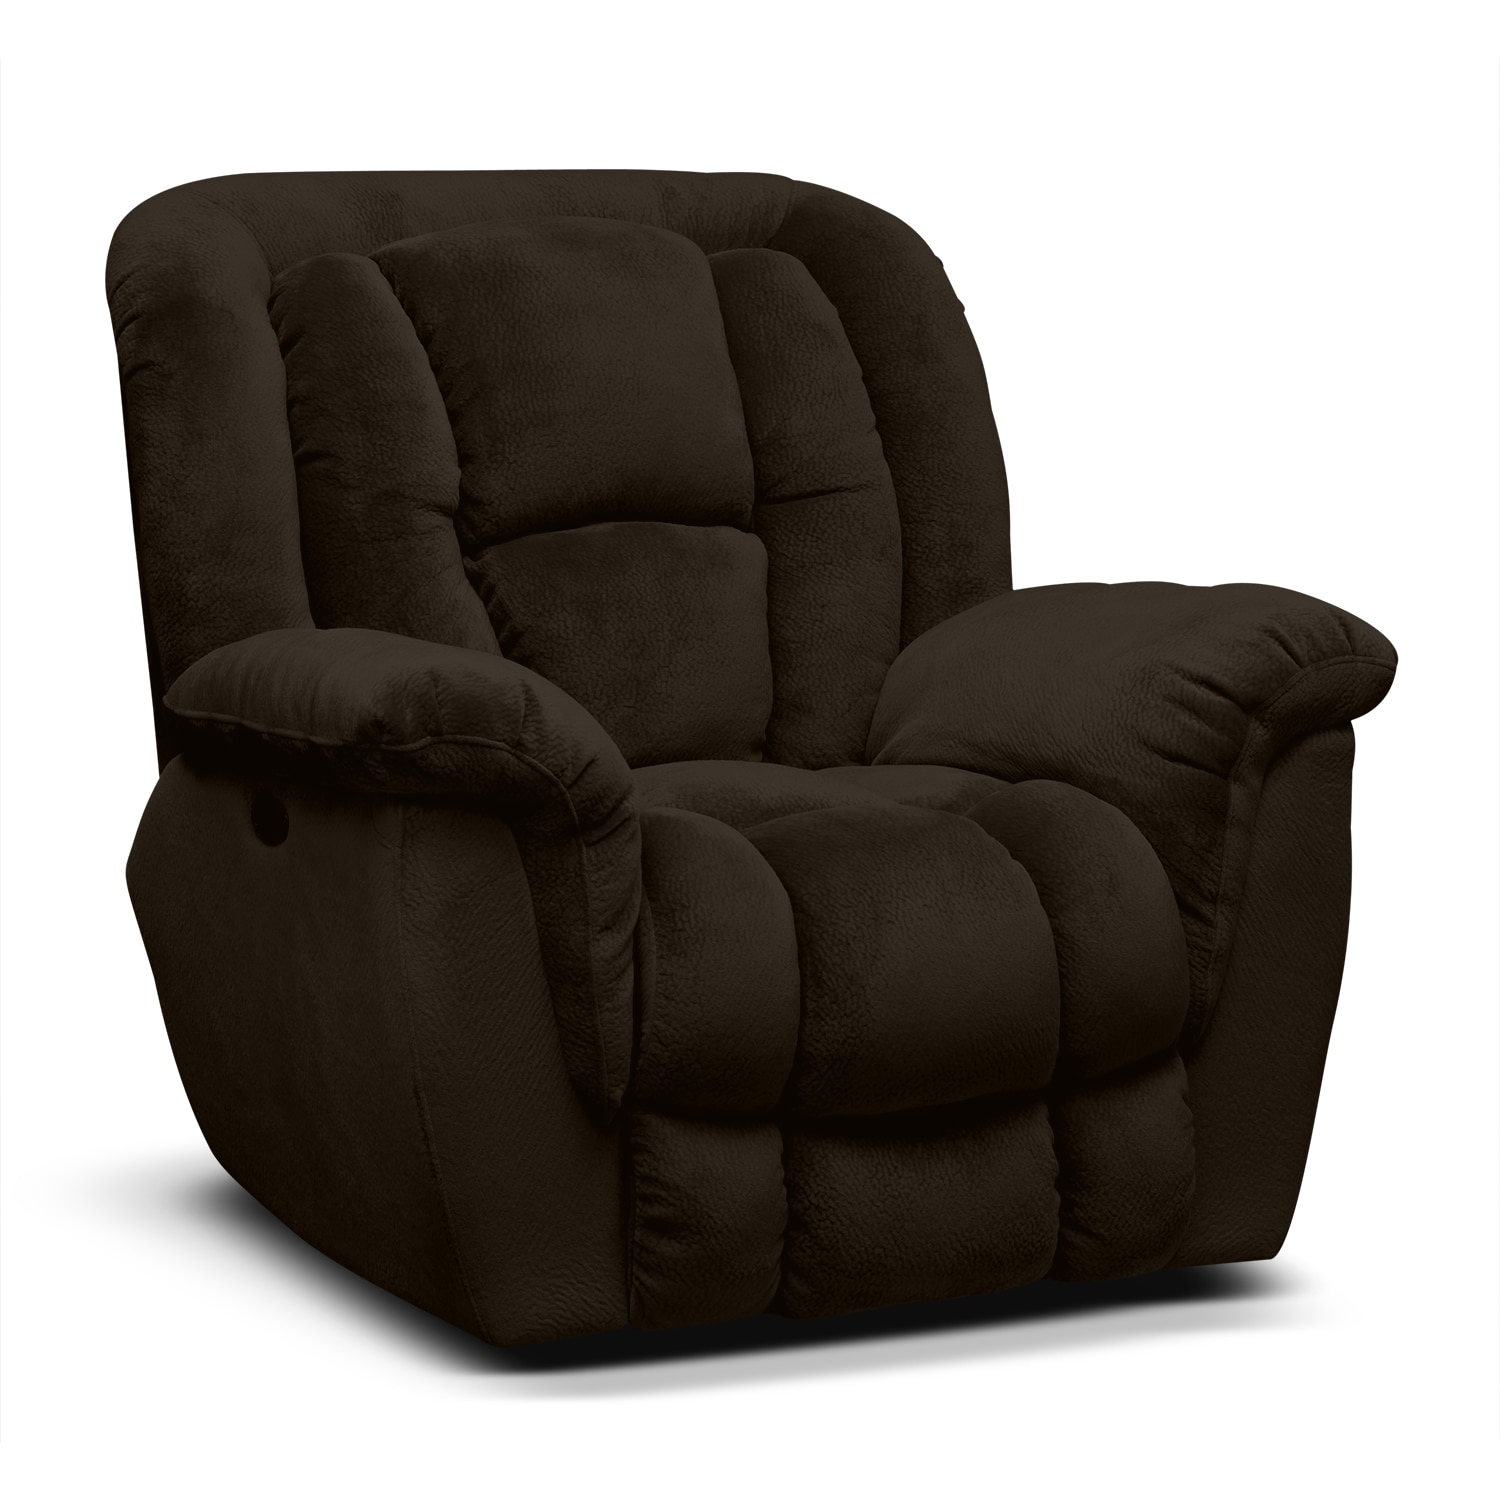 Mammoth Power Recliner - Chocolate